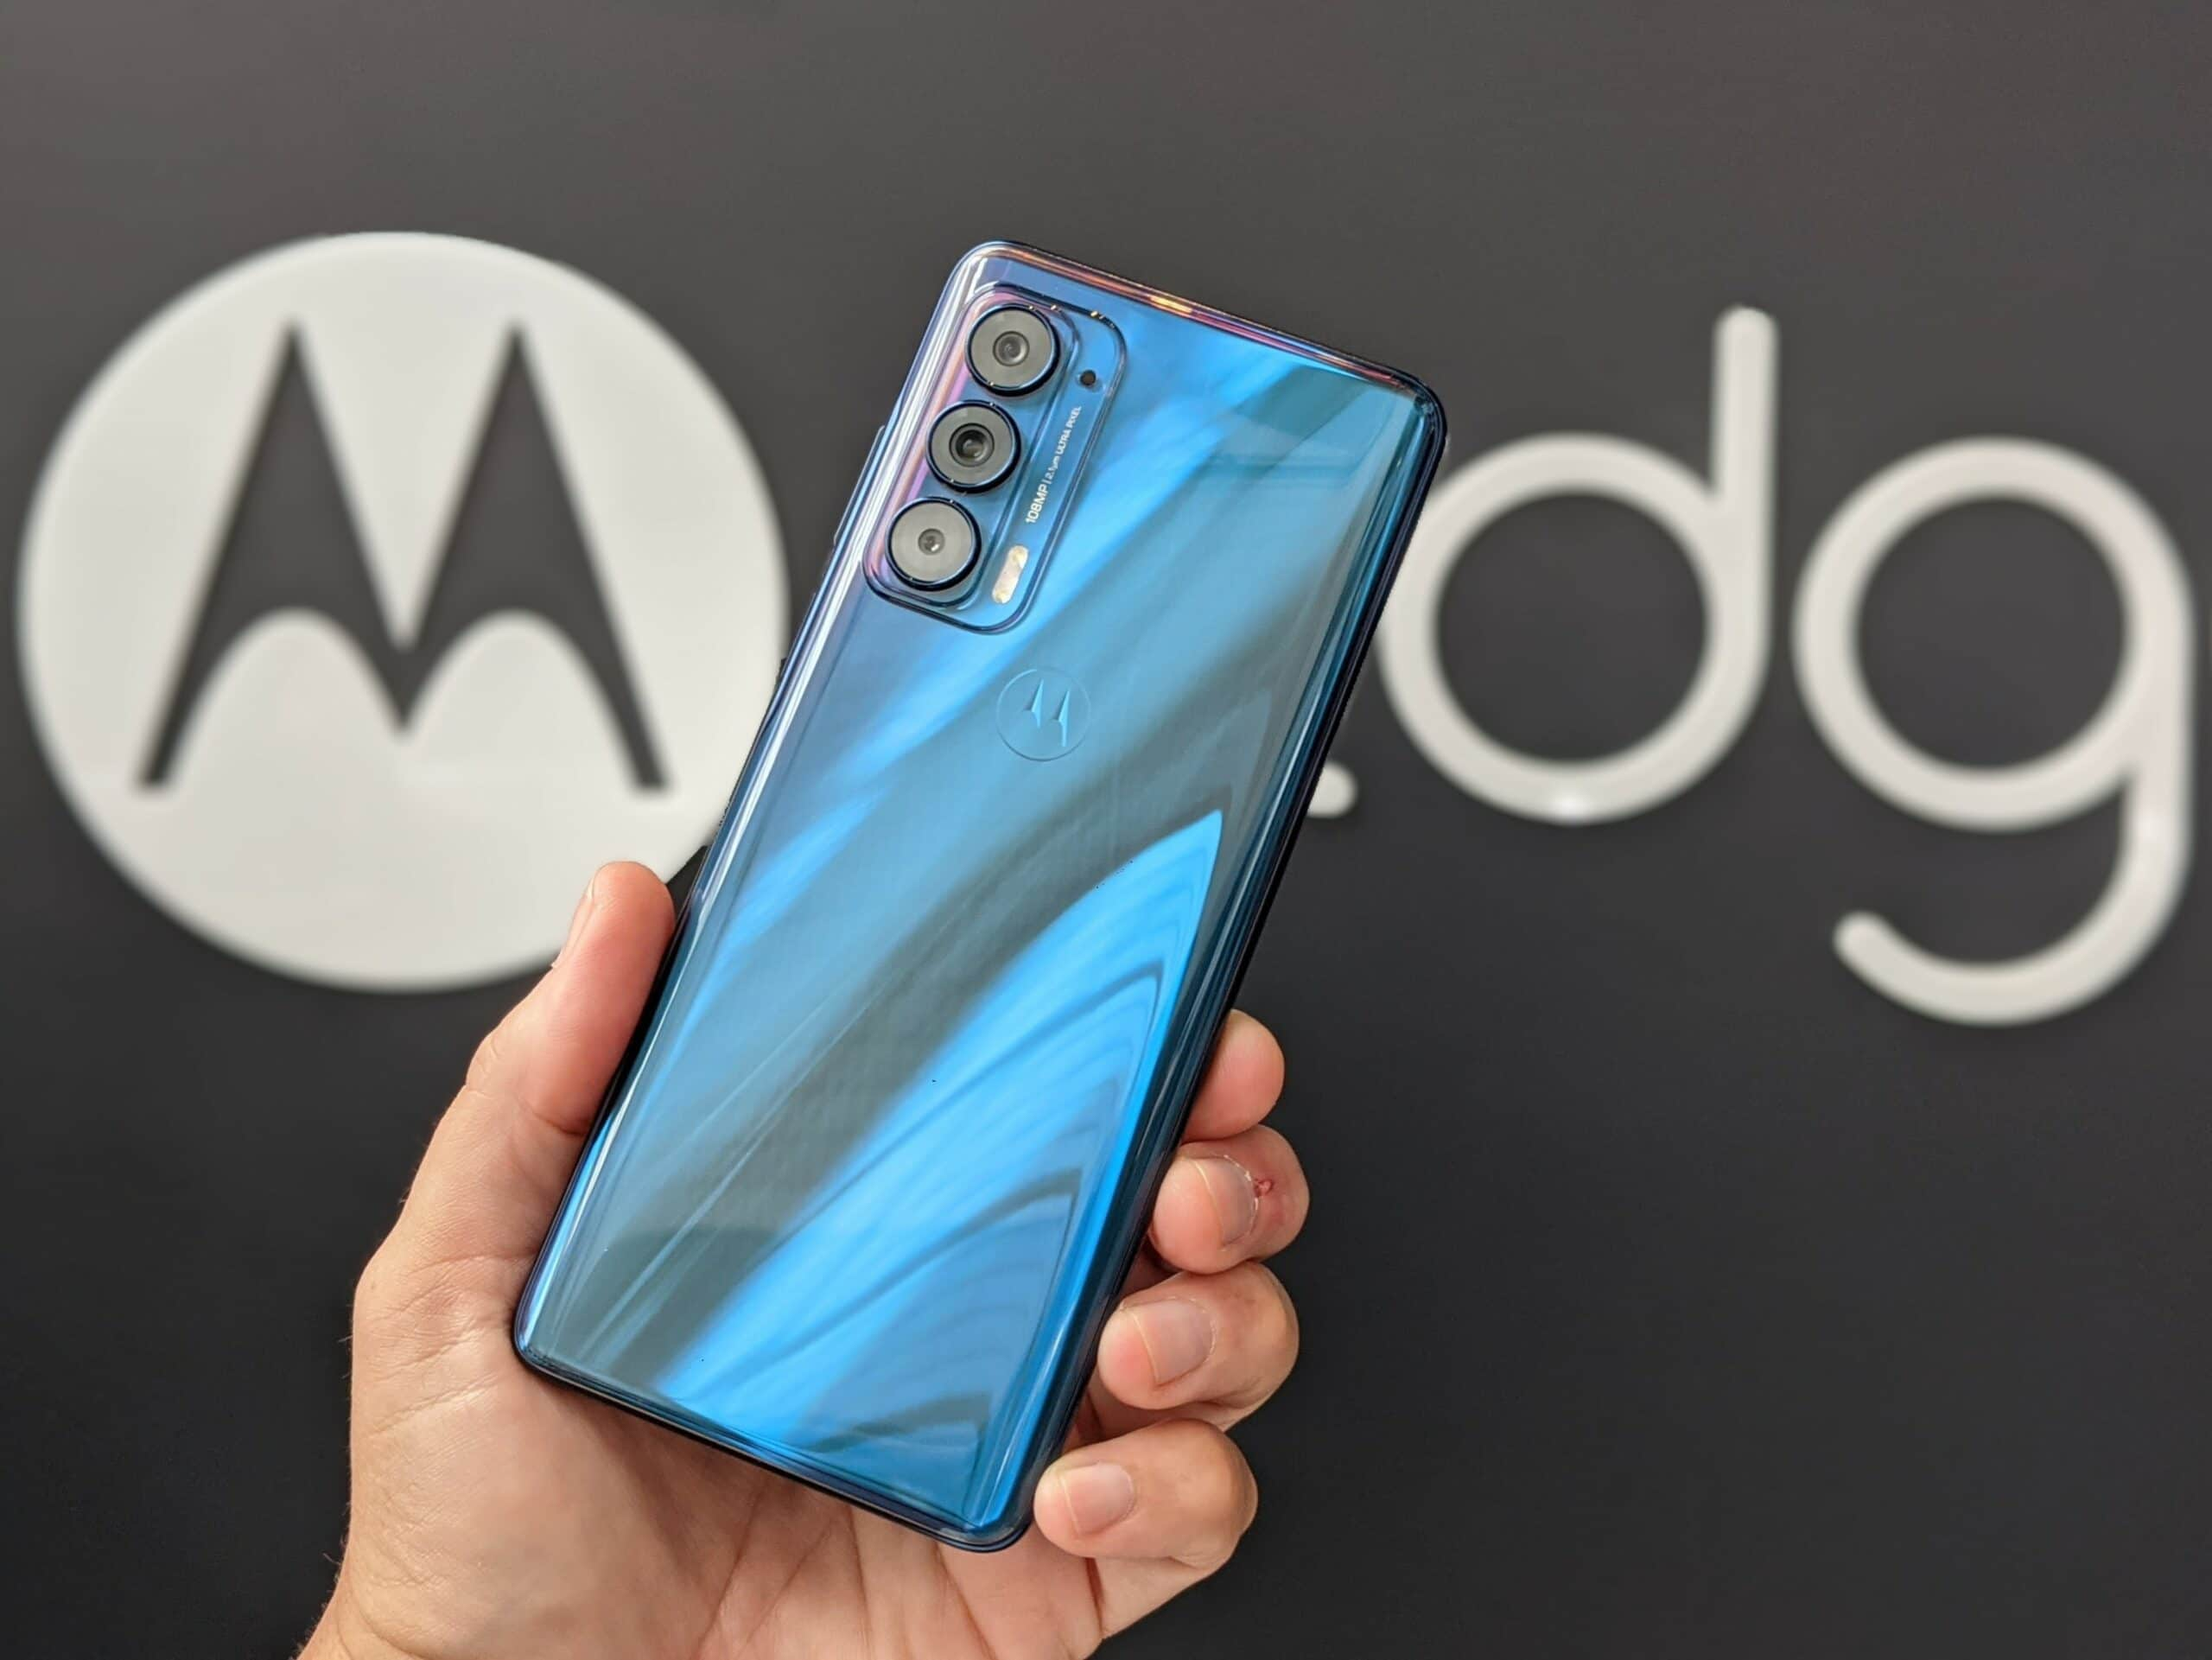 Moto Edge review (2021): this phone has lost its edge 13